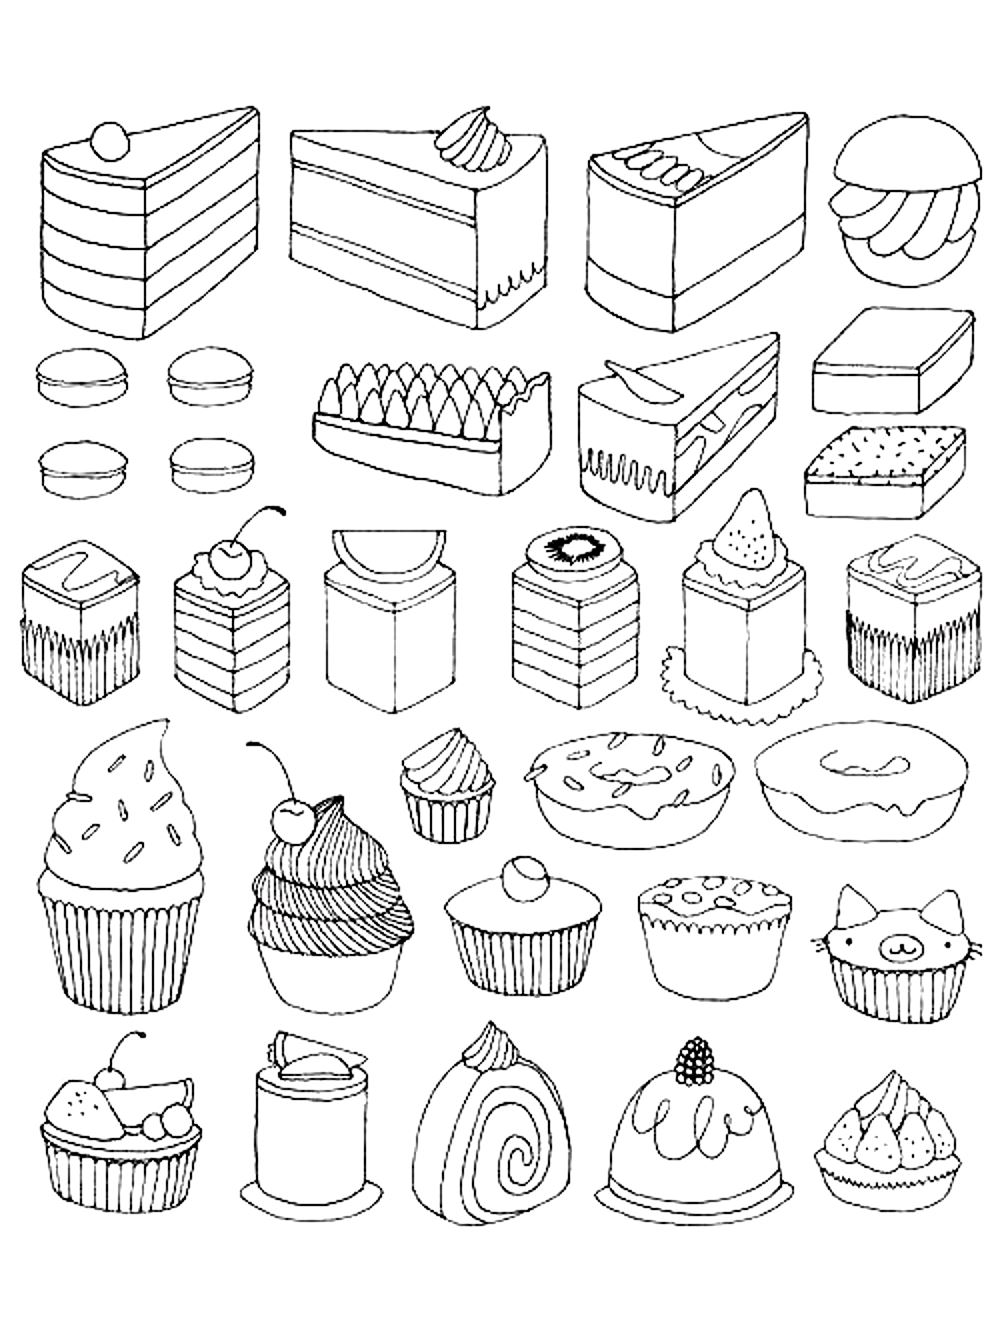 Cupcakes and little cakes Cupcakes Adult Coloring Pages